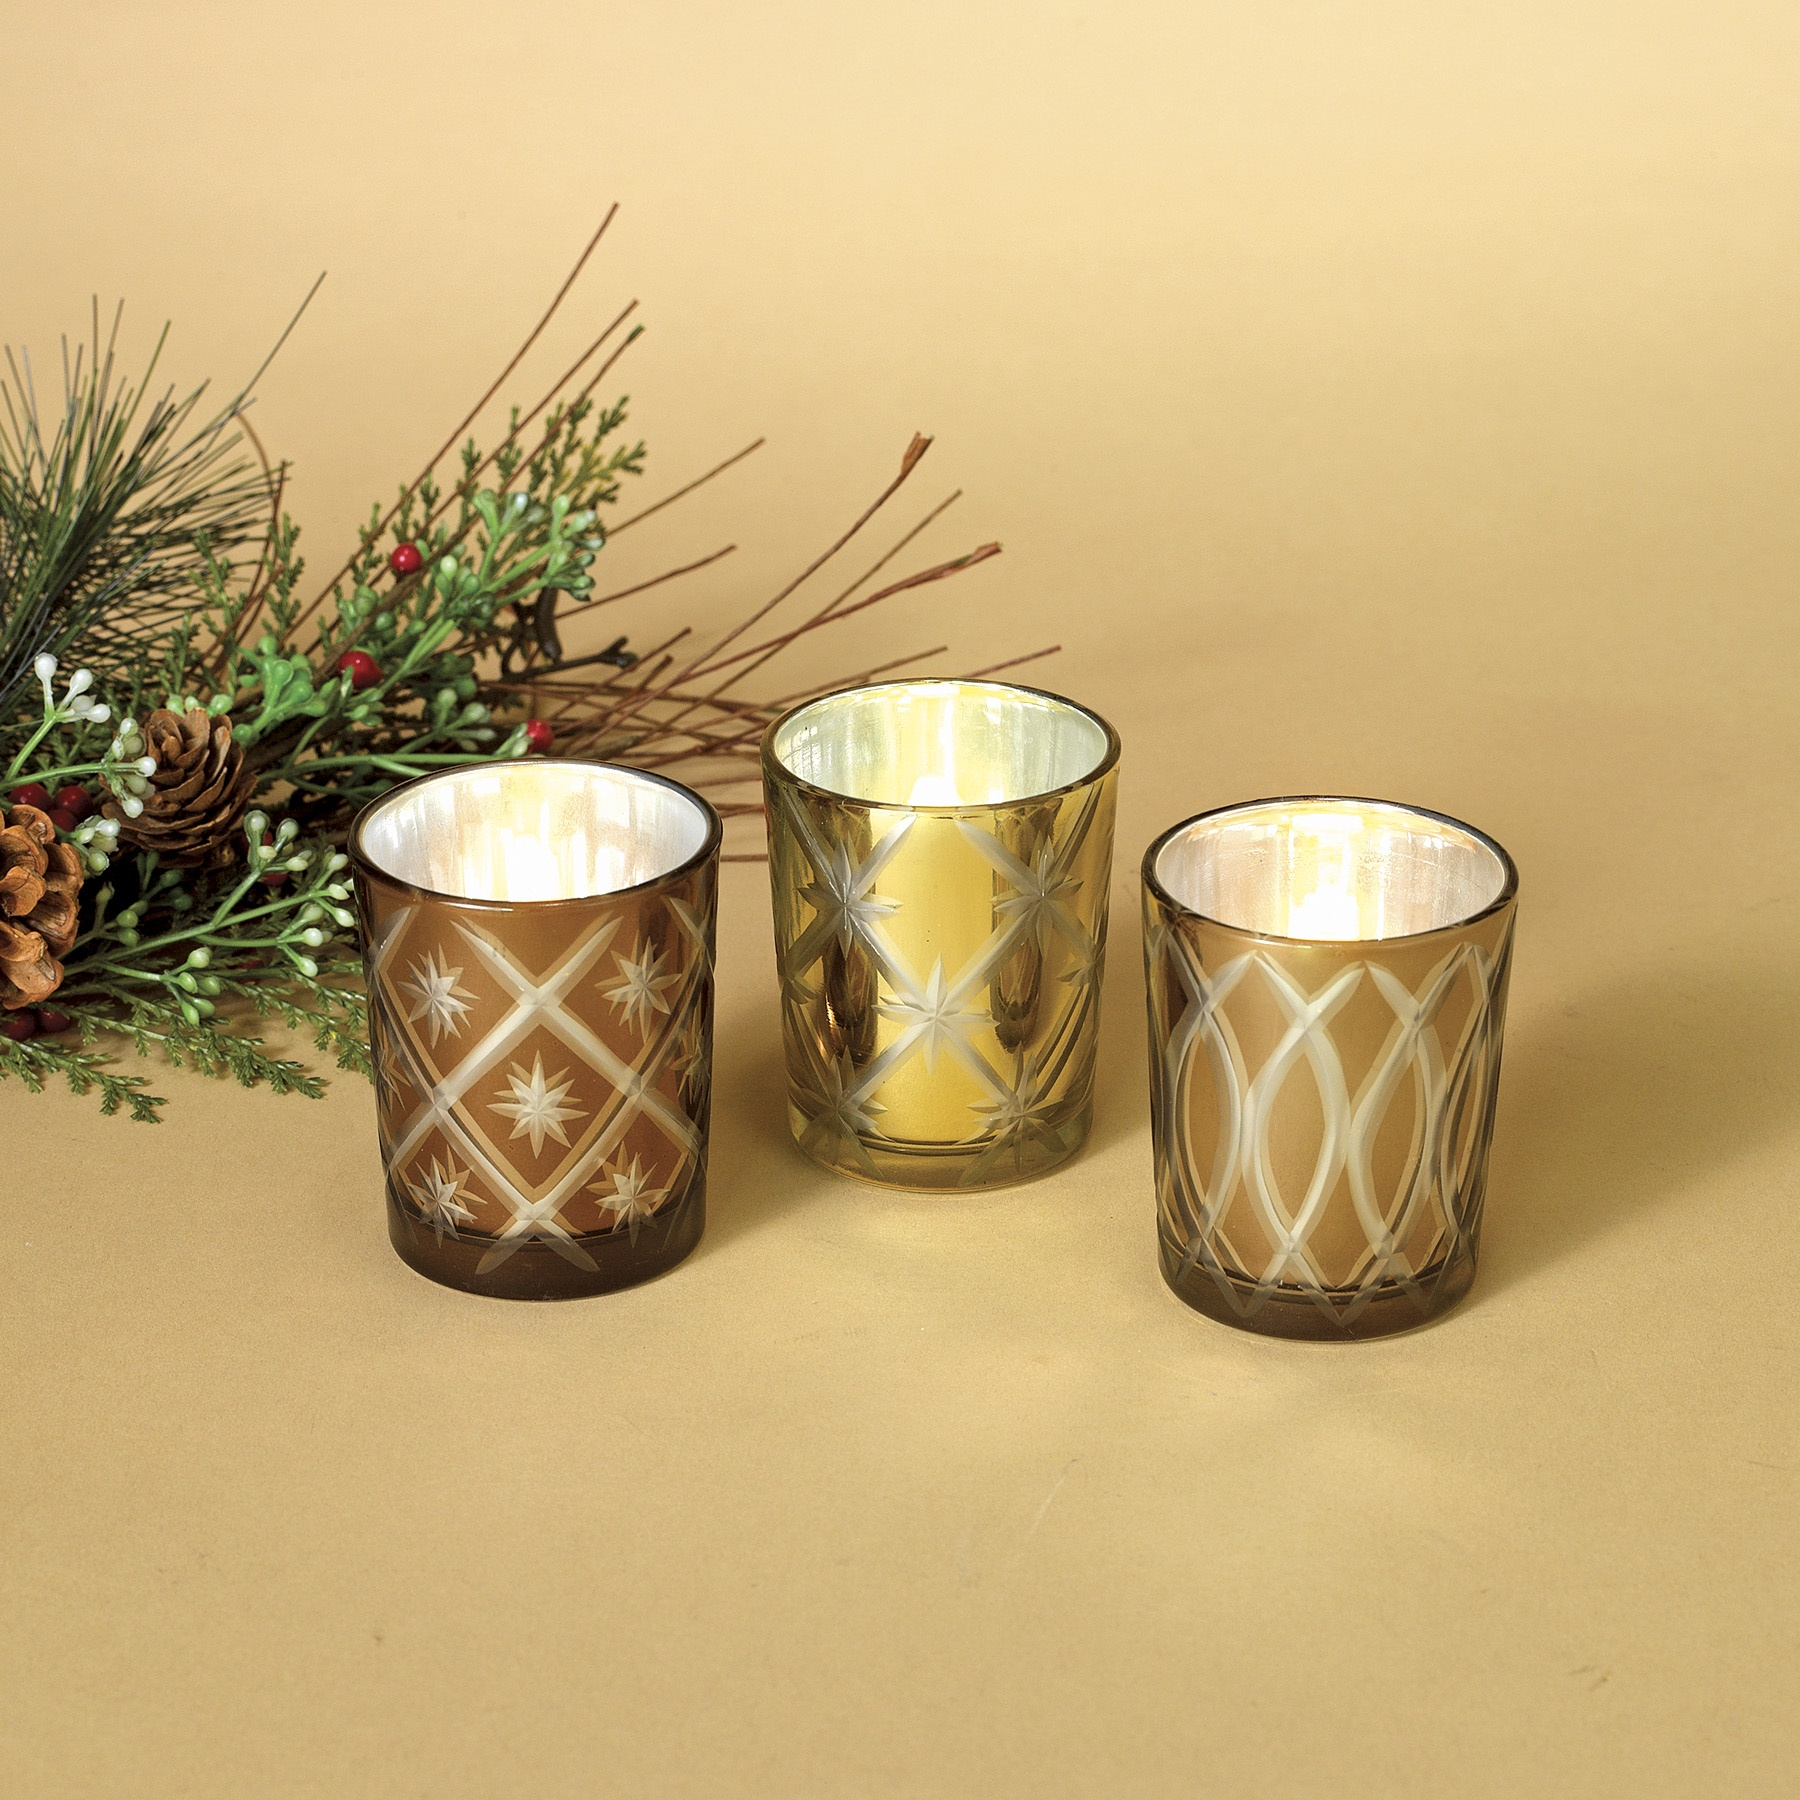 Christmas candle holders golden glass candle holders 3 for Christmas candle displays